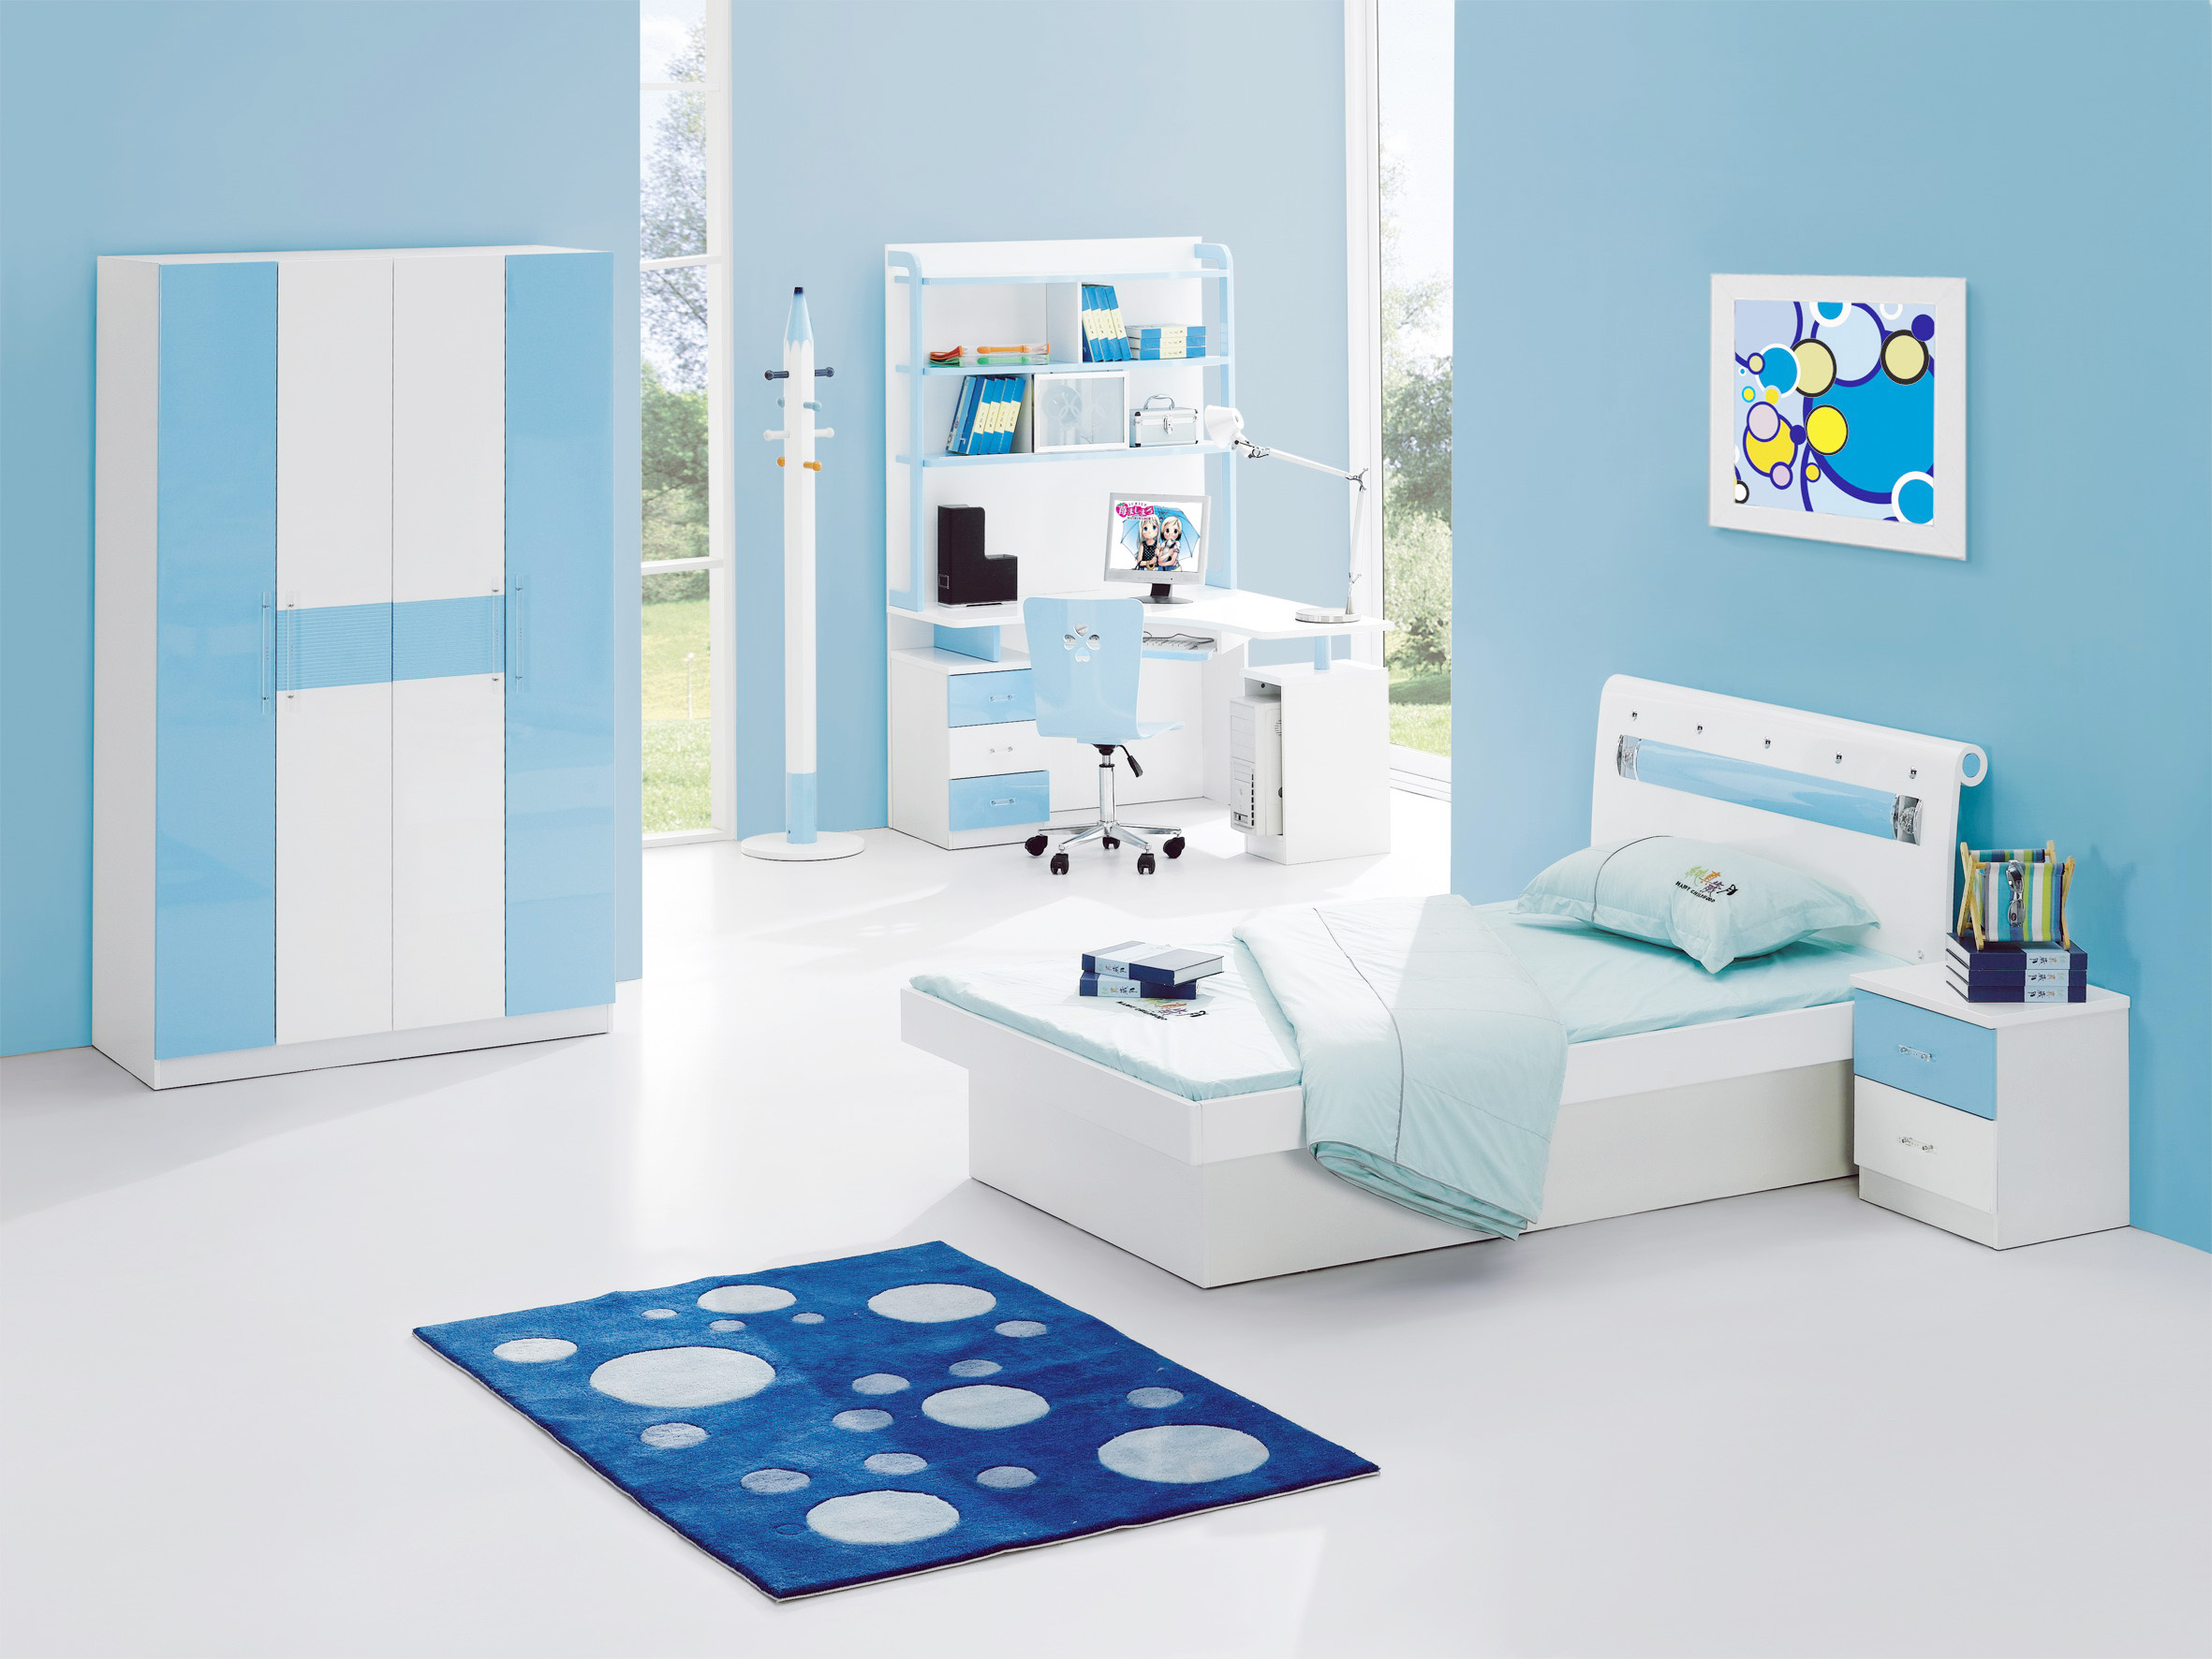 Kids Room Interior Design Blue Pictures To Pin On Pinterest